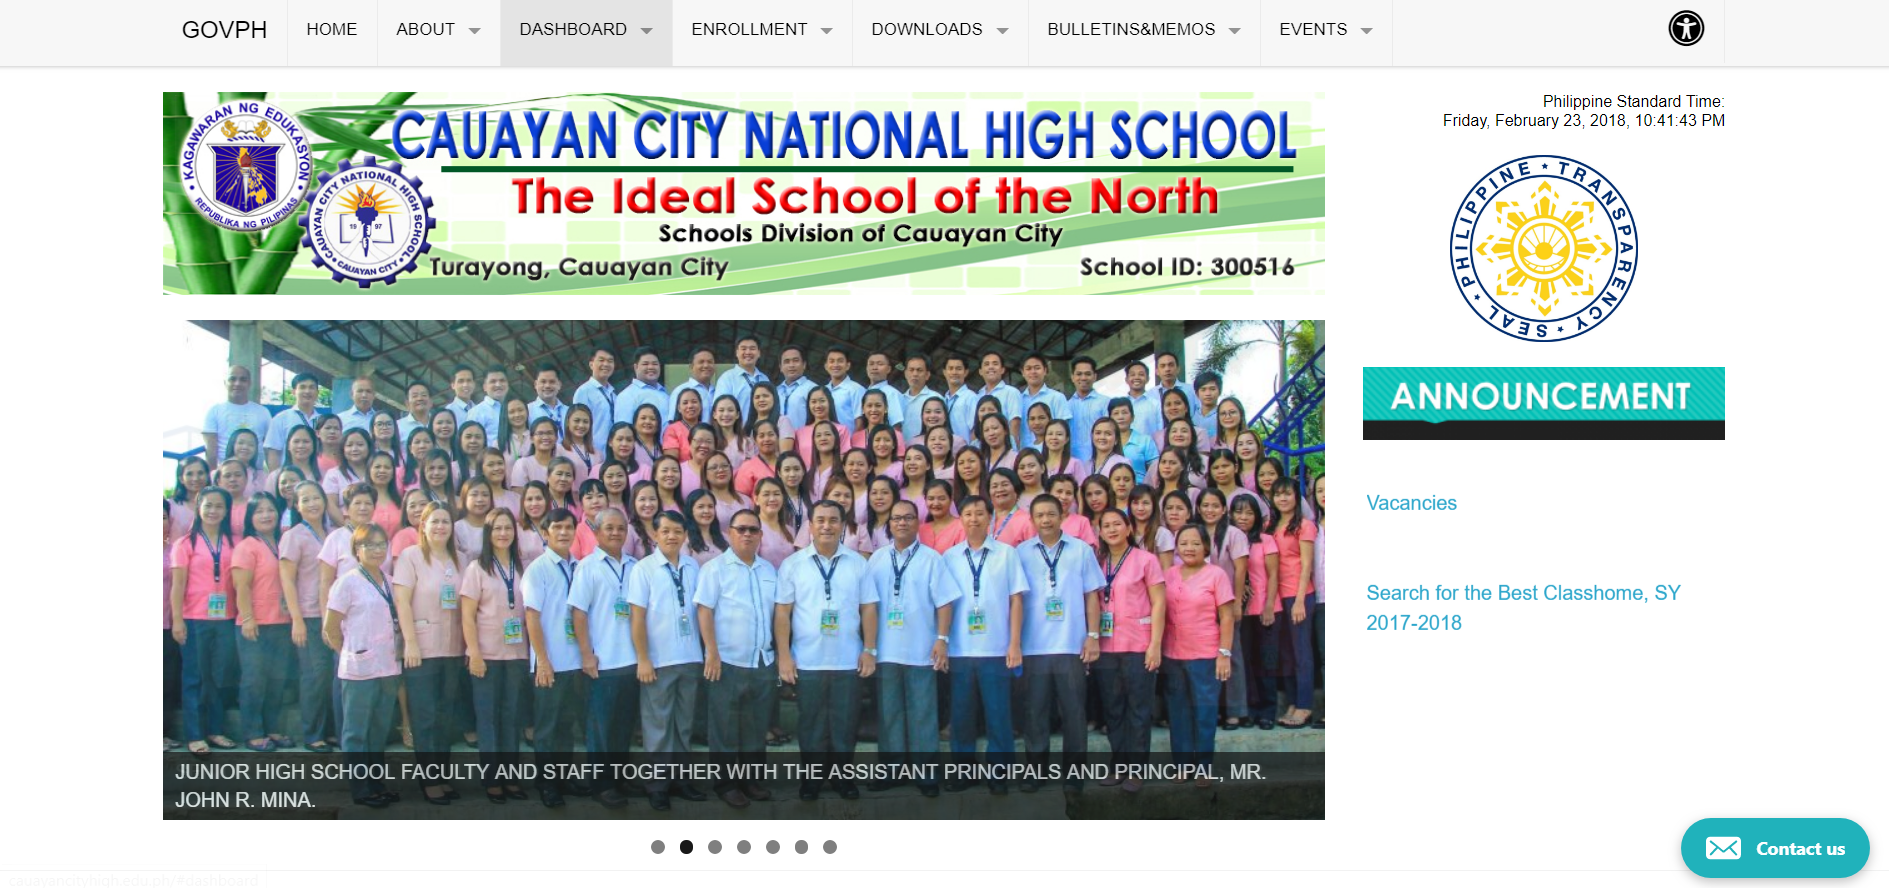 Cauayan City National High School